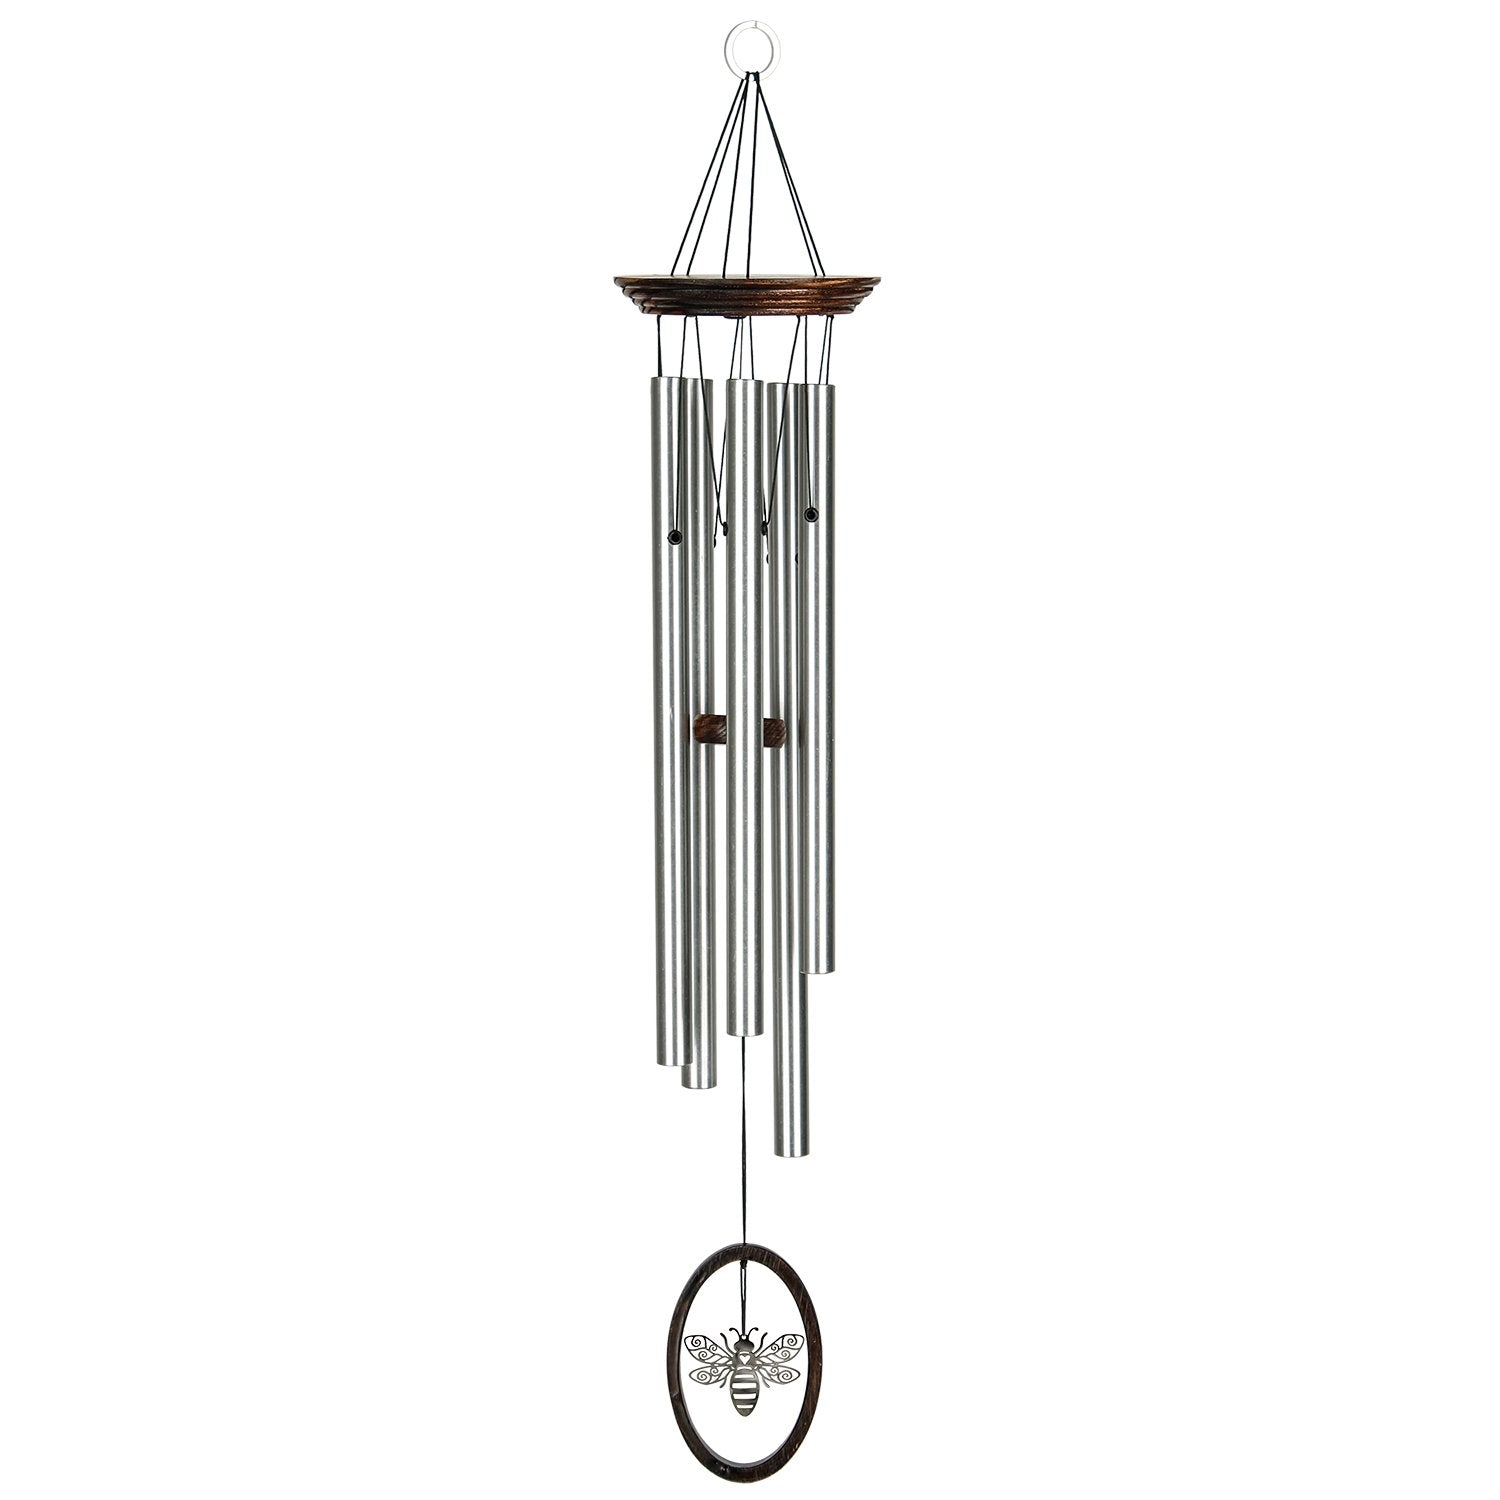 Wind Fantasy Chime - Bumble Bee full product image